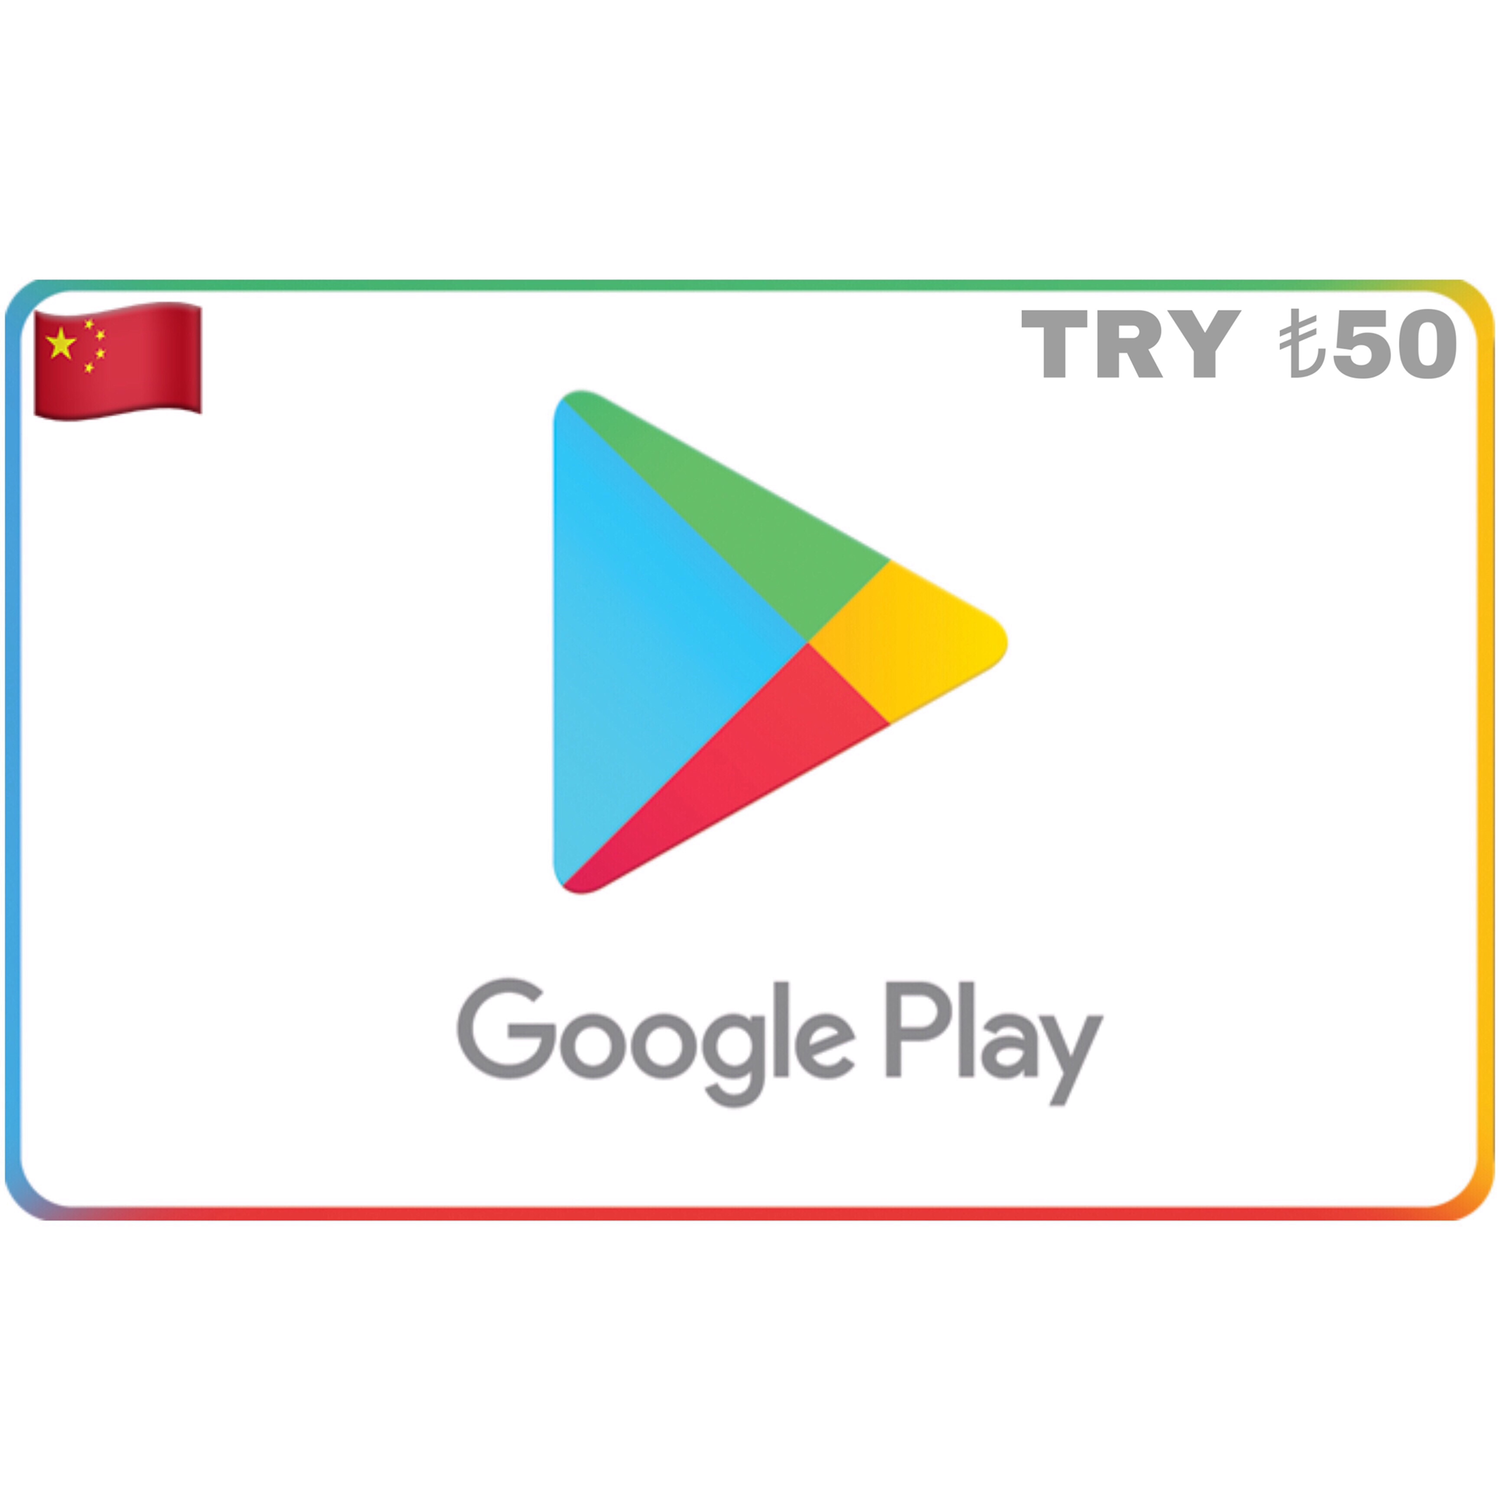 Google Play Gift Card Turkey TRY ₺50